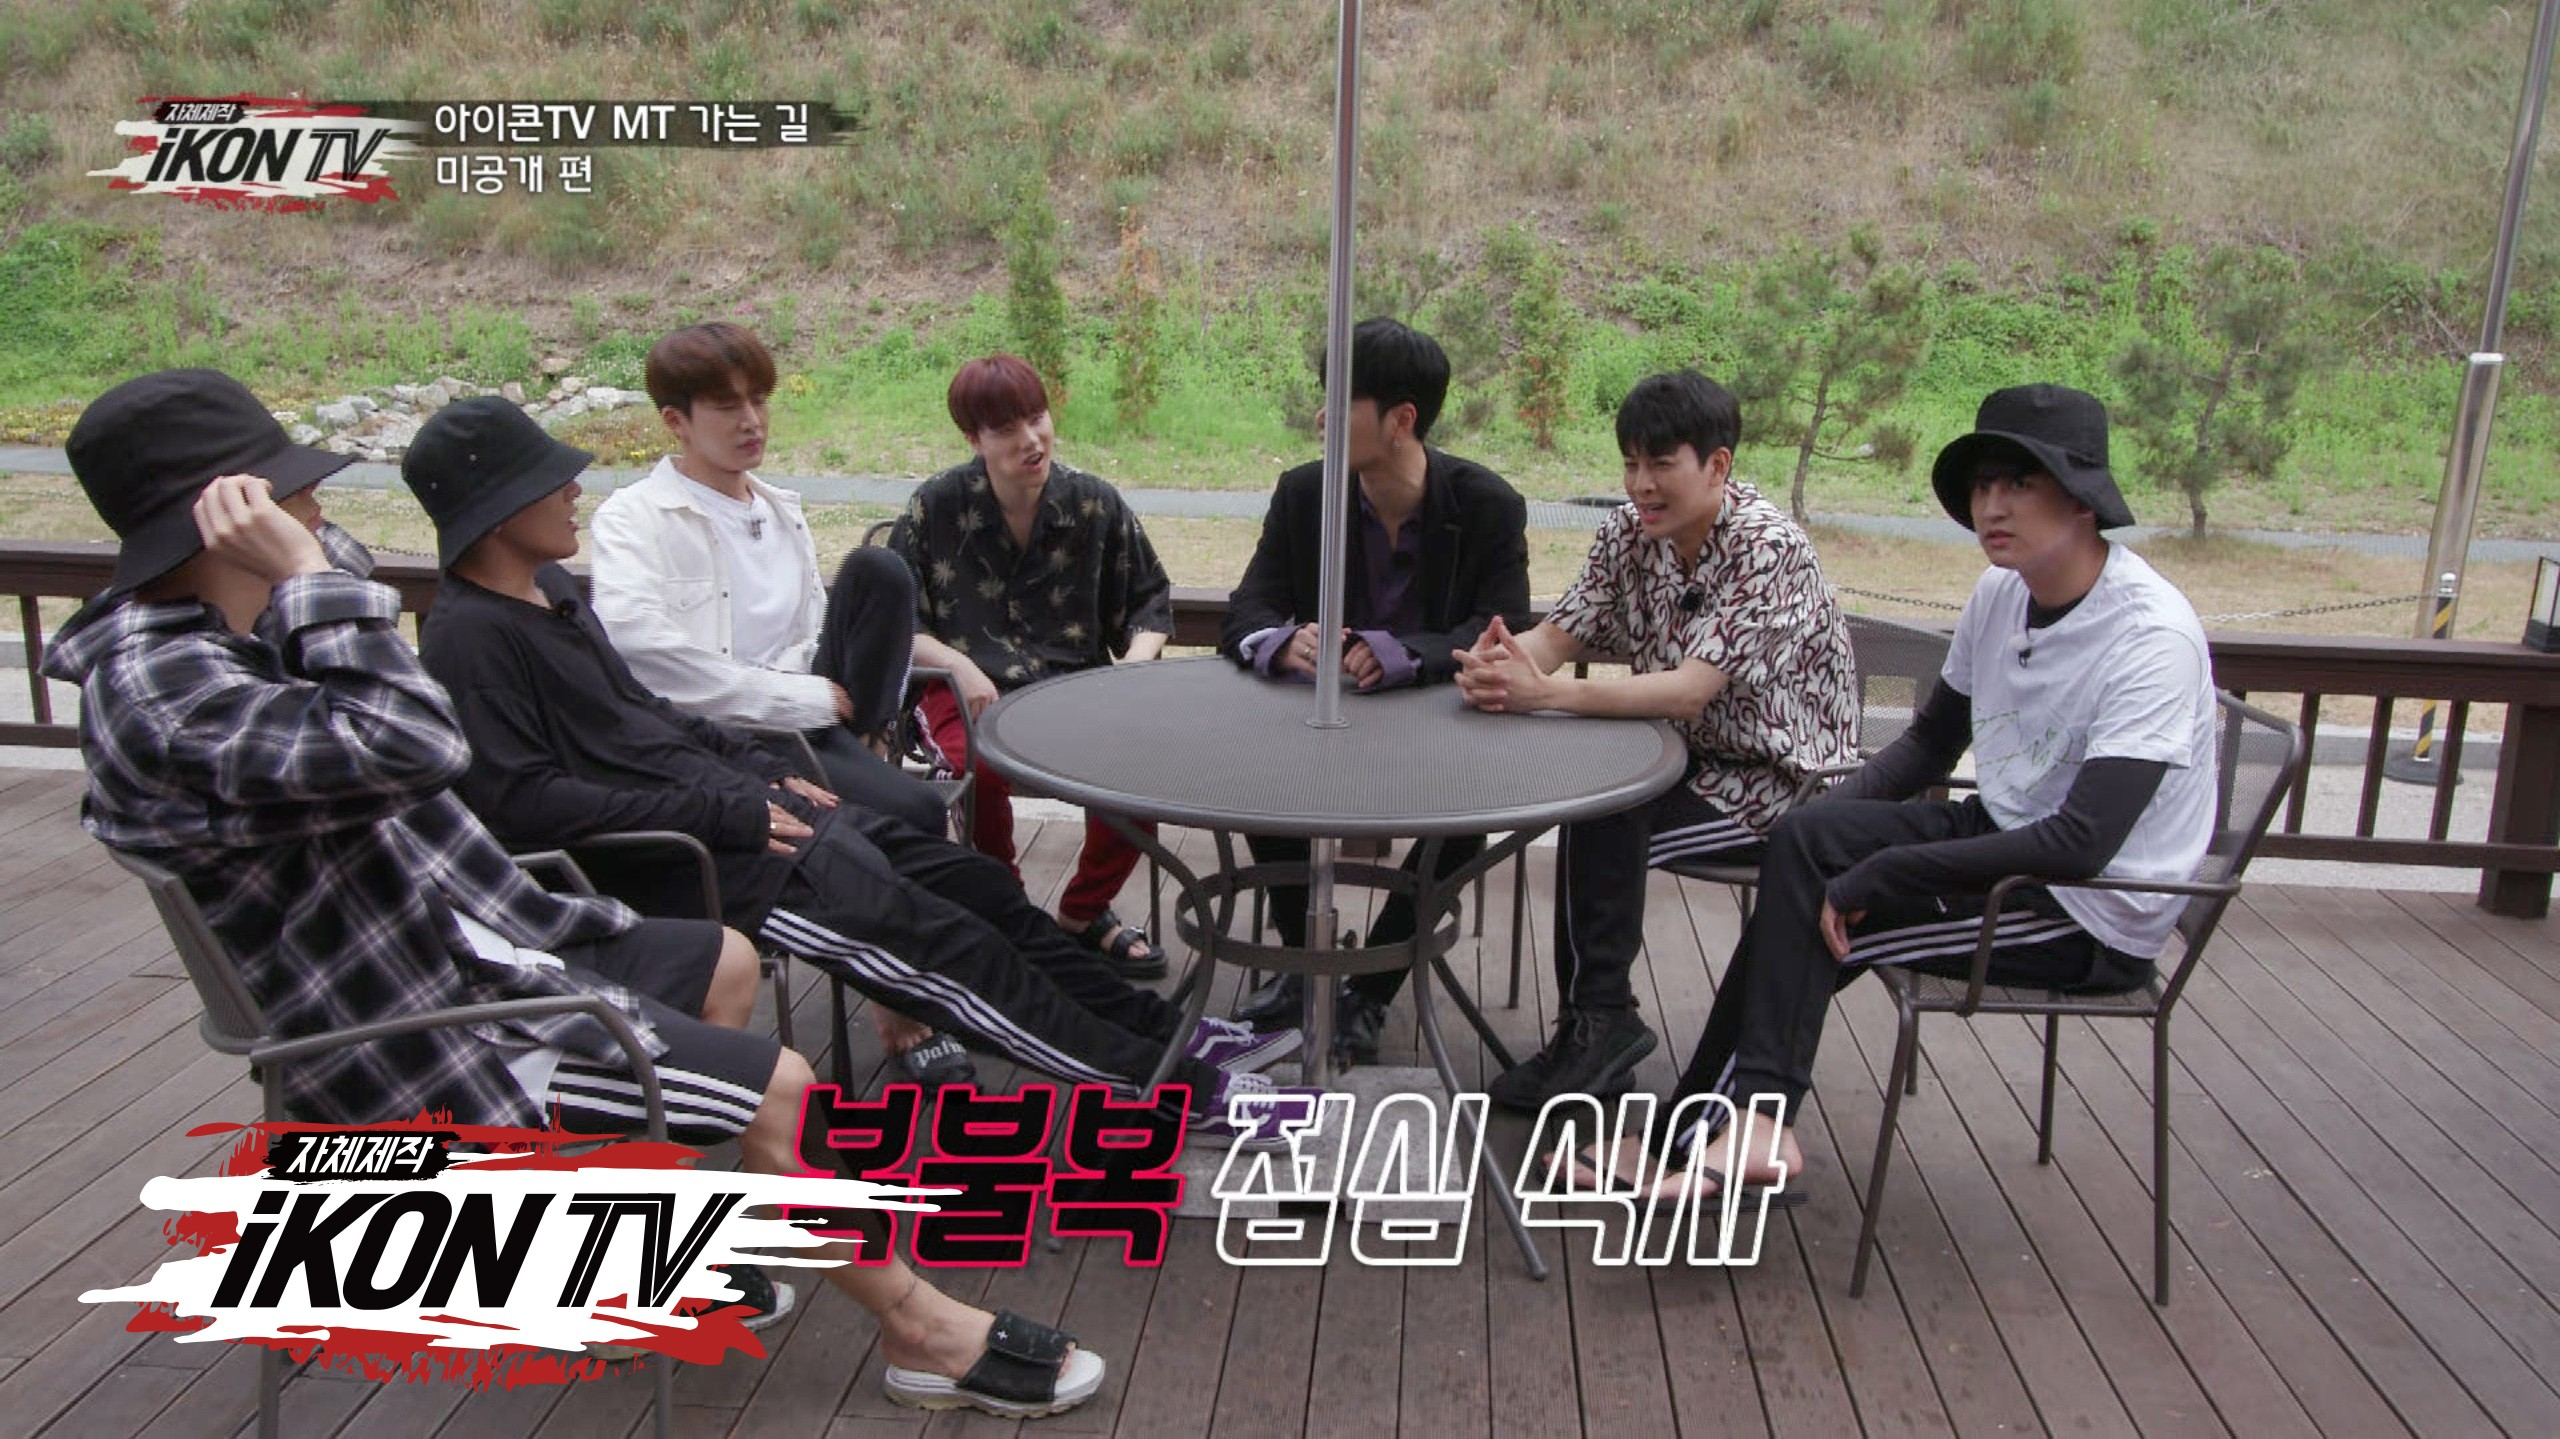 iKON - '자체제작 iKON TV' EP.11 Unreleased Clip